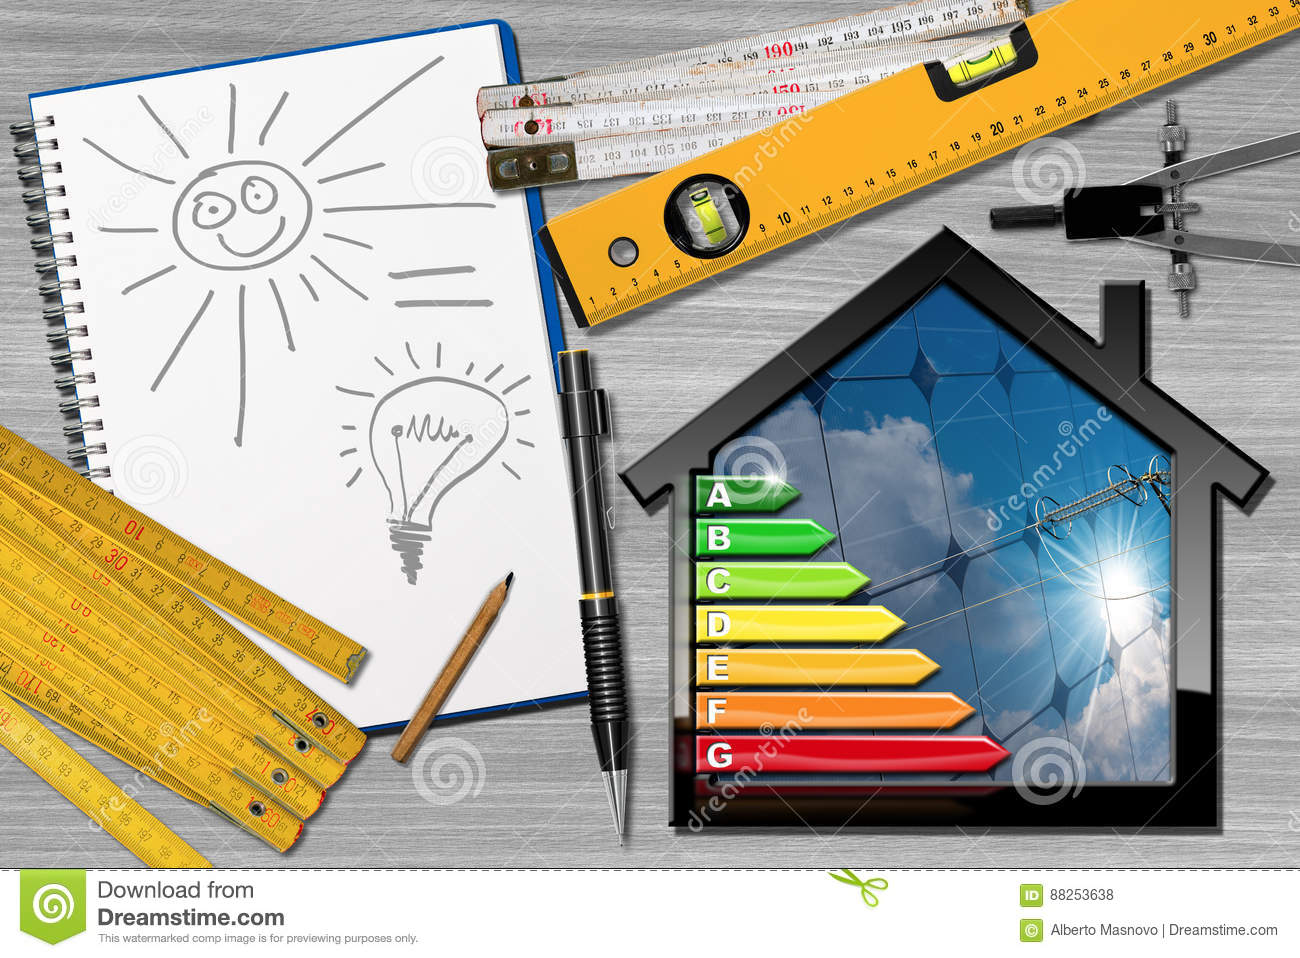 Energy Efficiency Project House With Solar Panels Stock Photo Simple Power Projects On Image Of A Cell Schematic Download Class